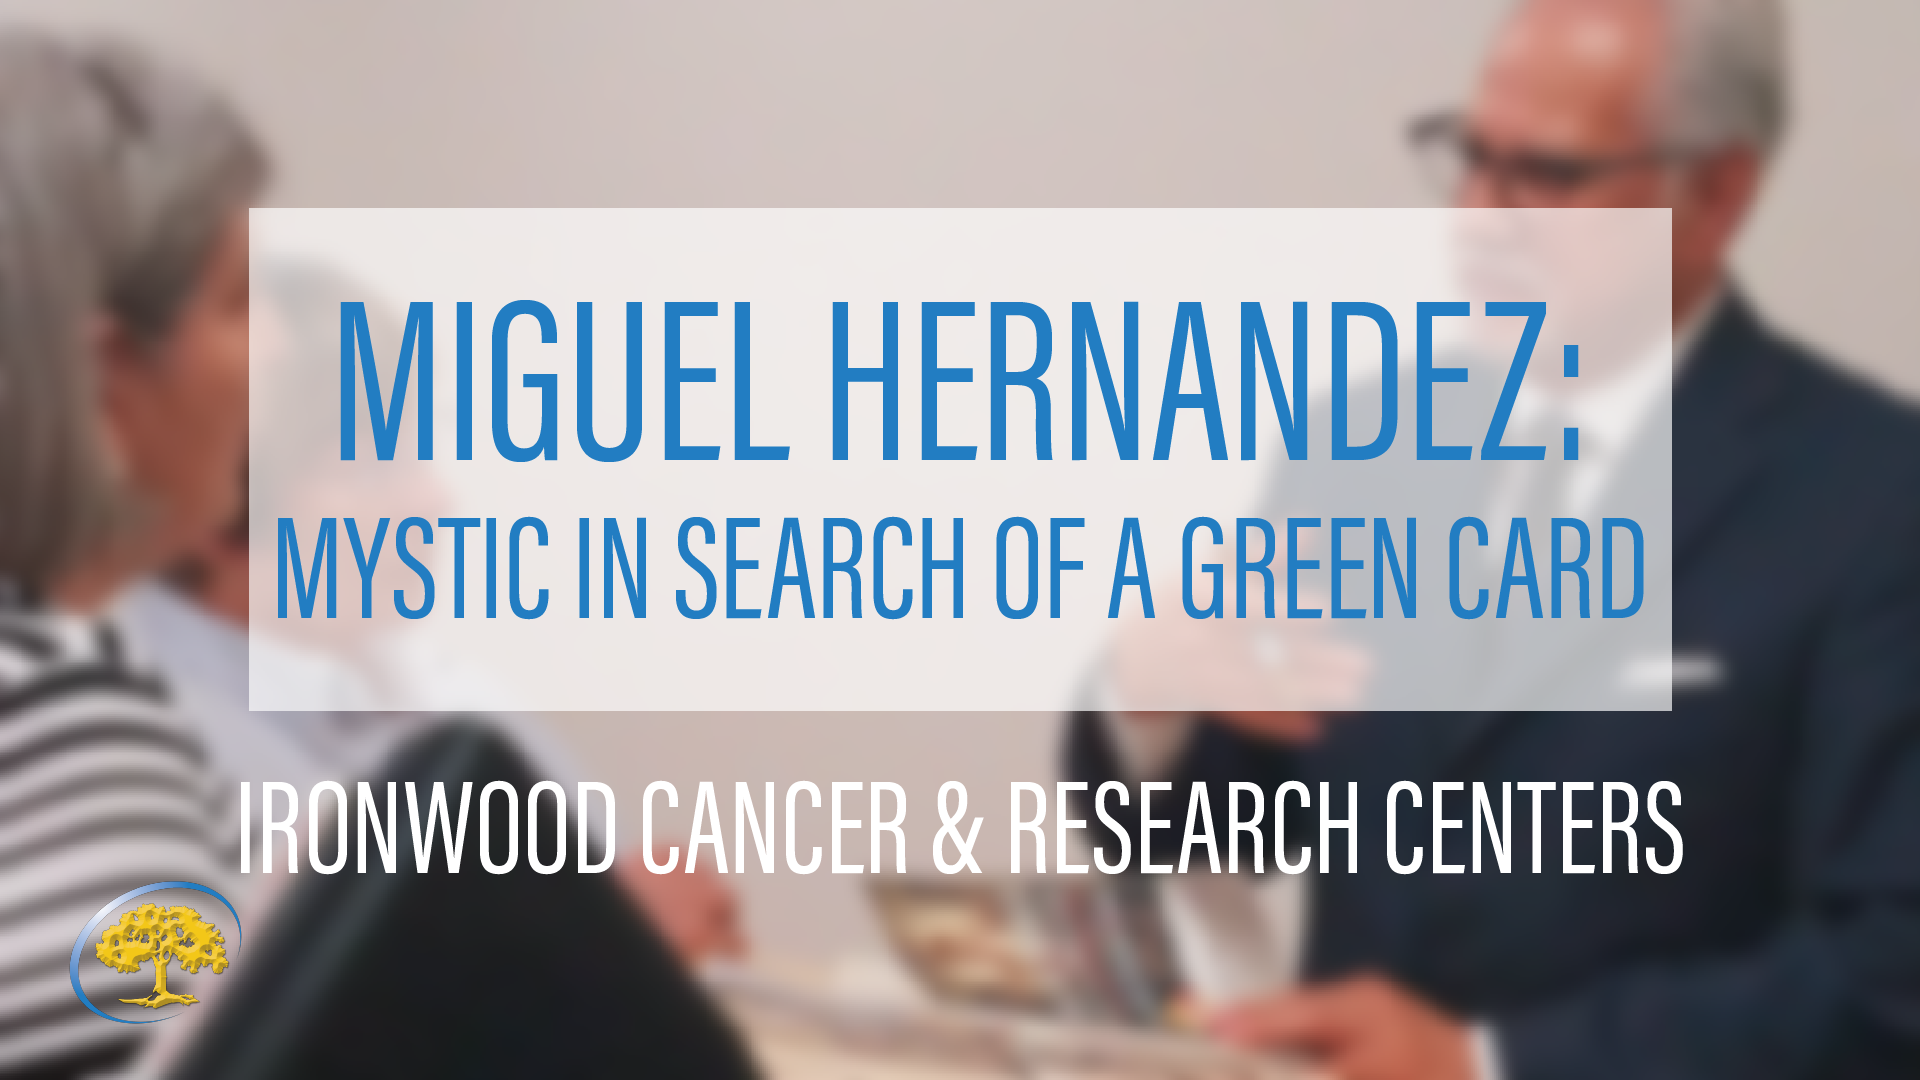 Miguel Hernandez Mystic Ironwood Cancer & Research Centers